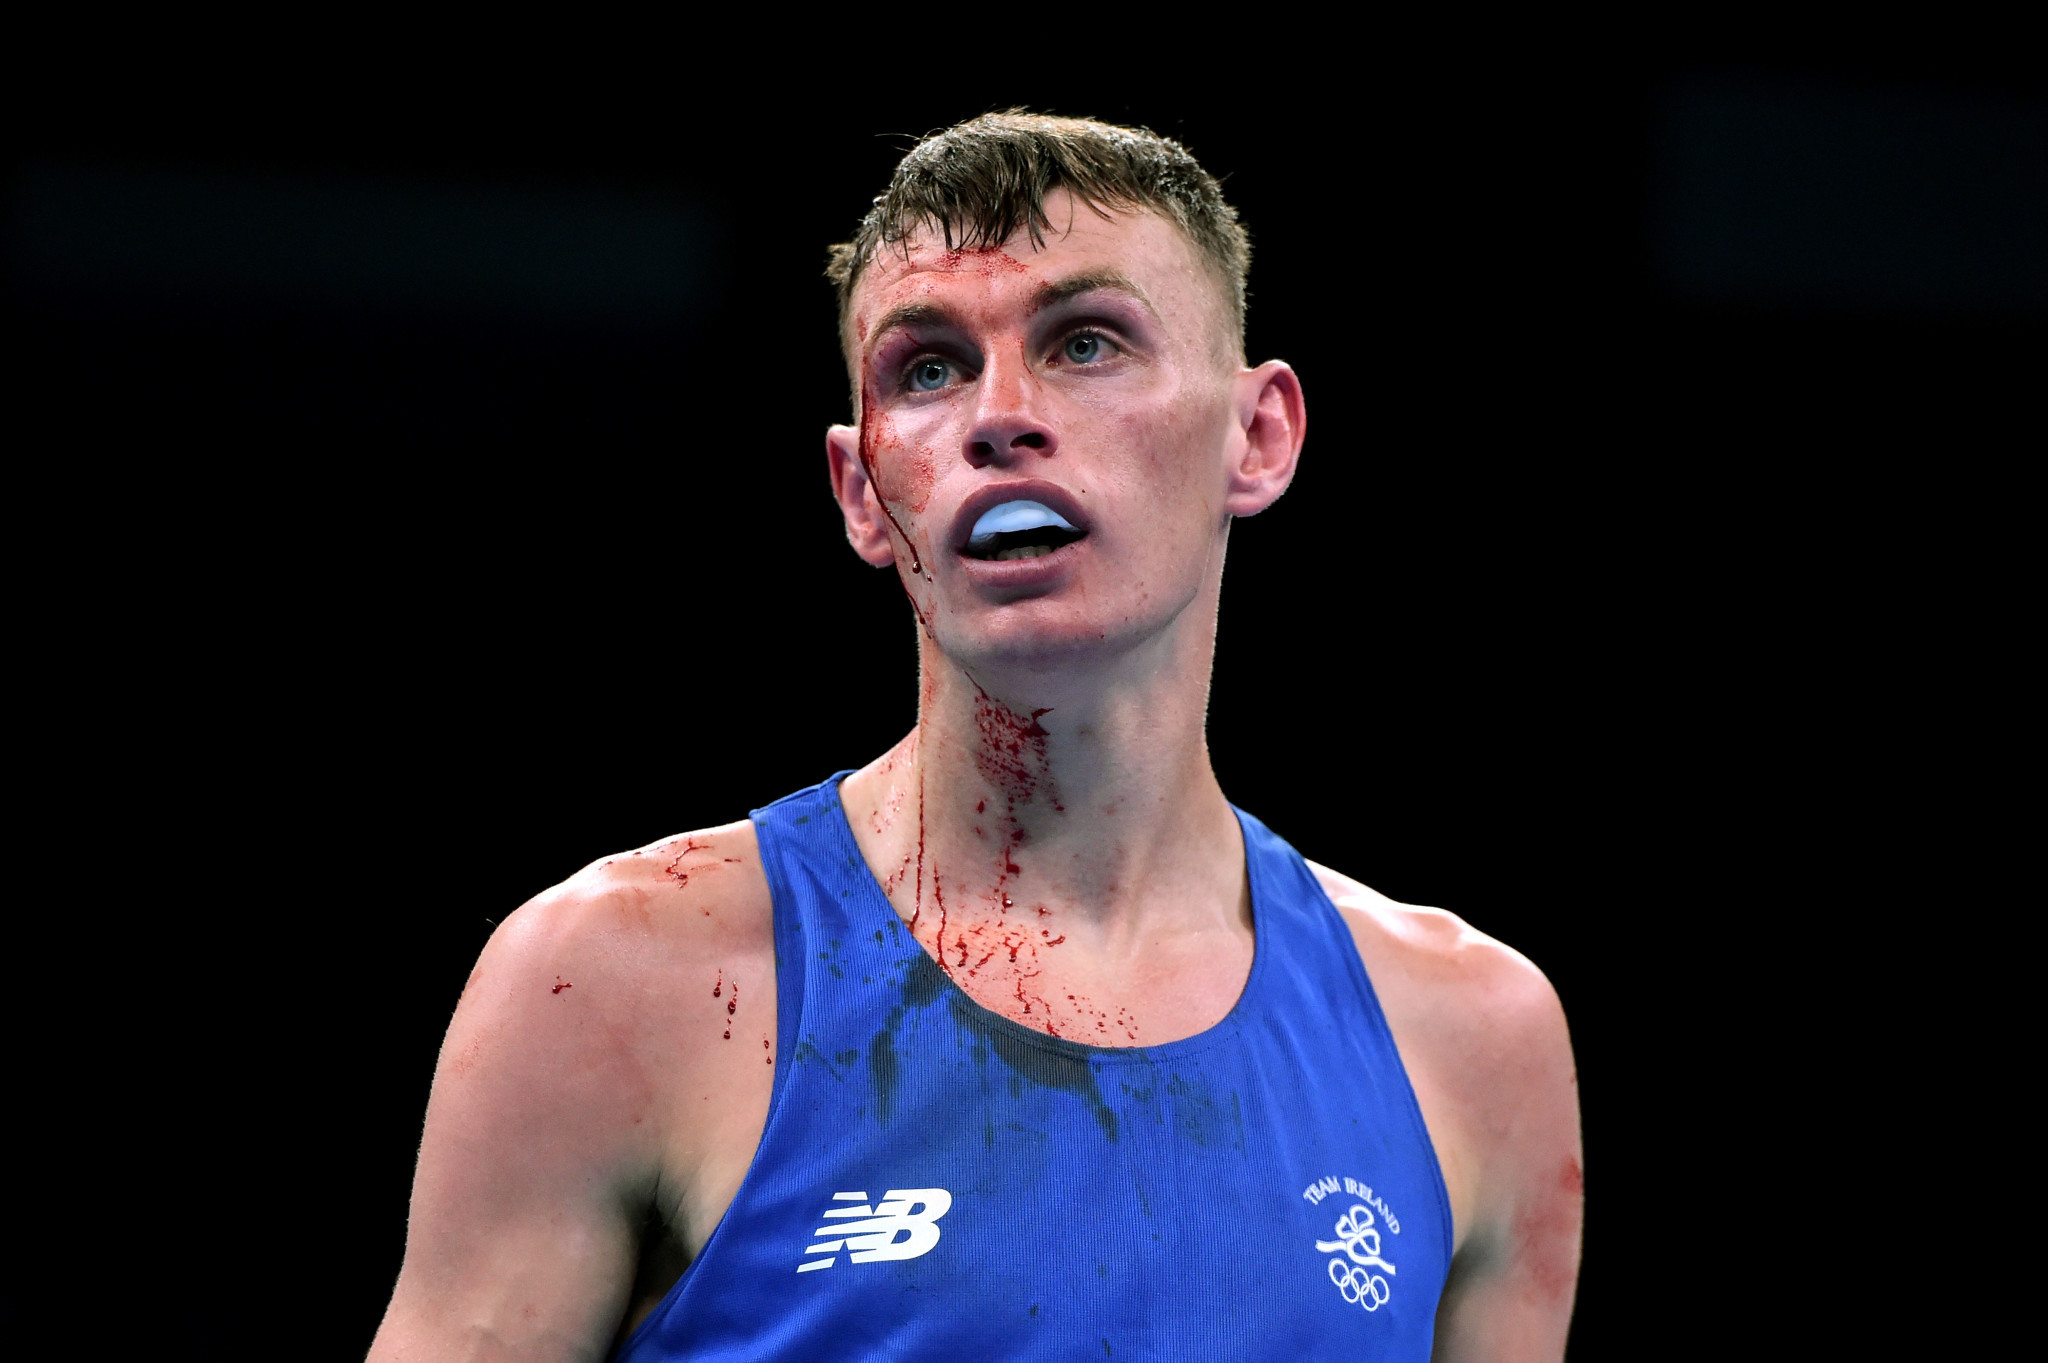 Northern Irish boxer banned from Gold Coast nightspots after fight with bouncer